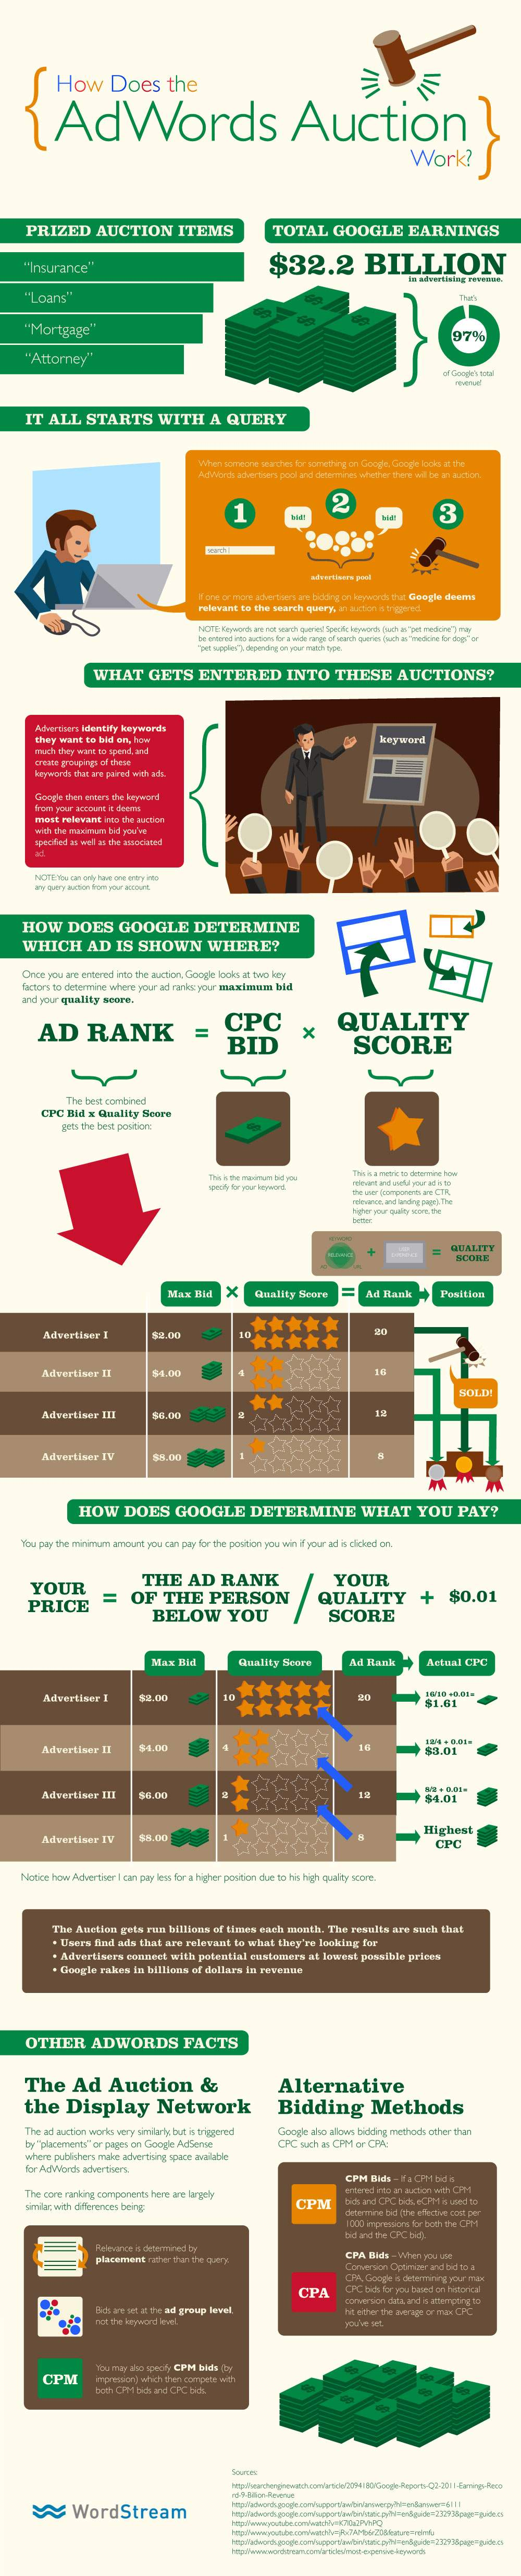 How the AdWords Auction Works